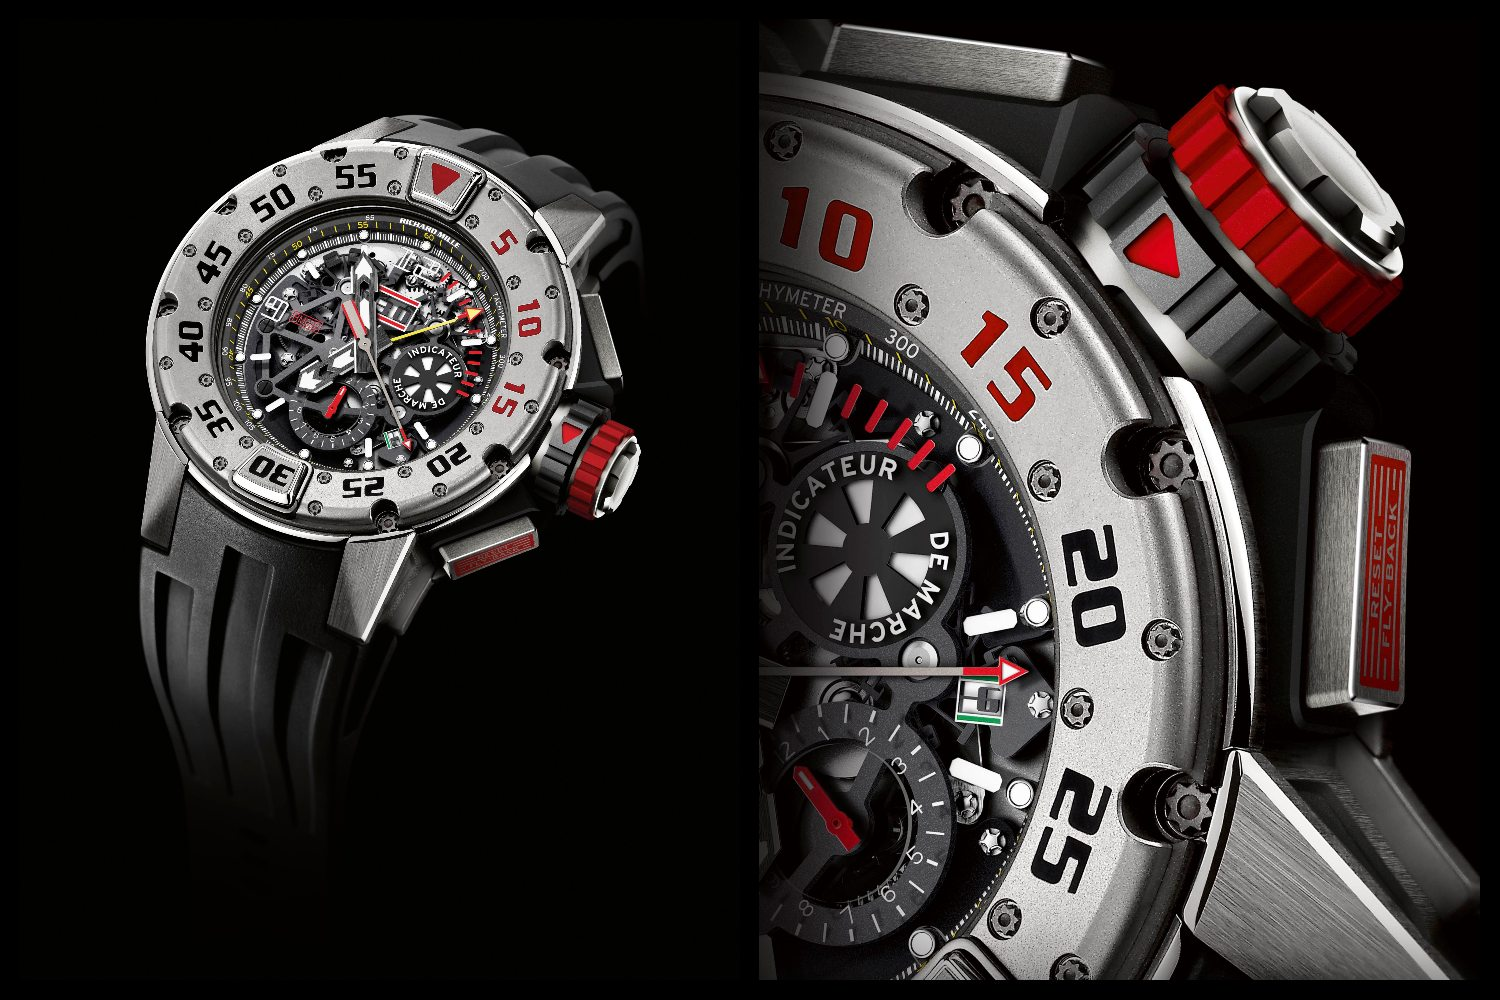 Richard Mille RM 032 Diver's watch